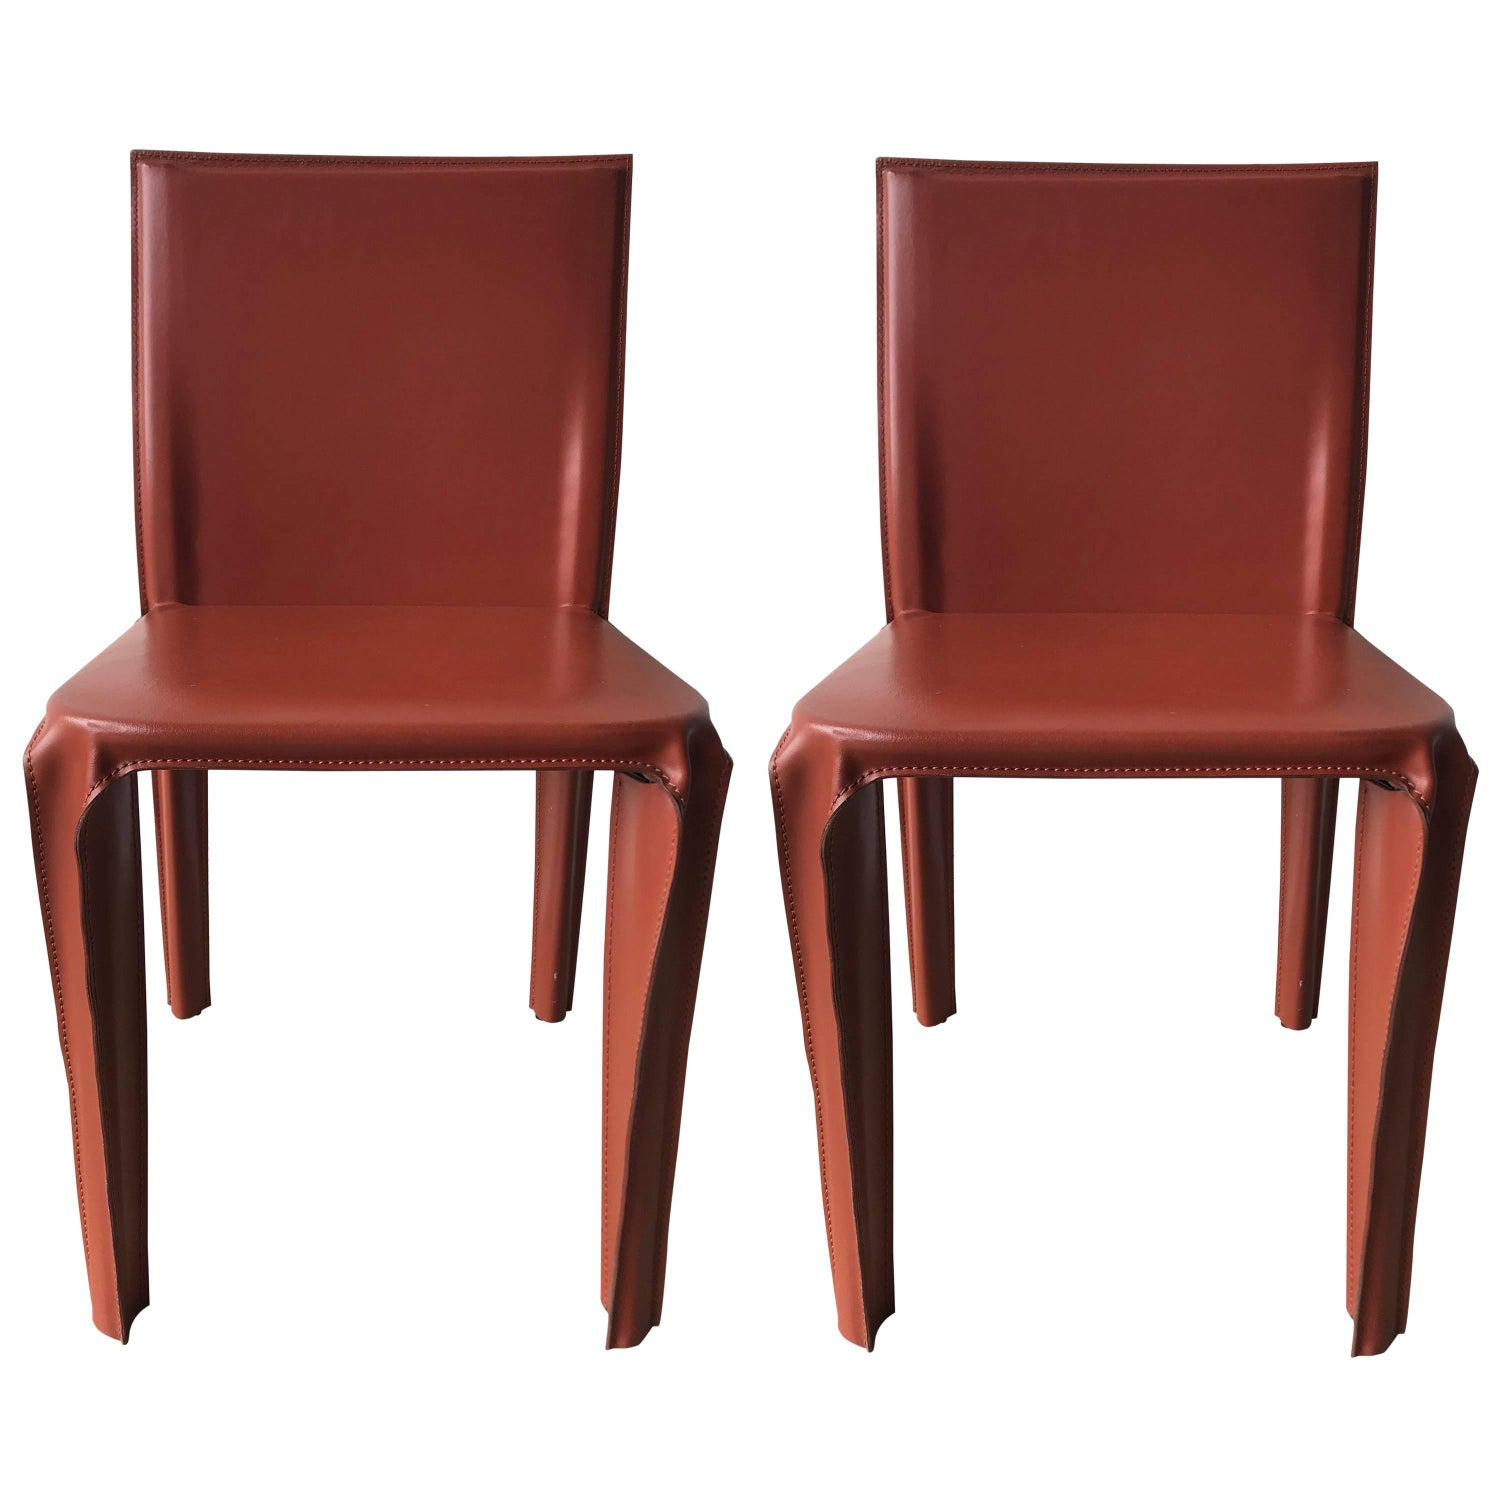 Pair Of Red Leather Chairs By Arper Italy